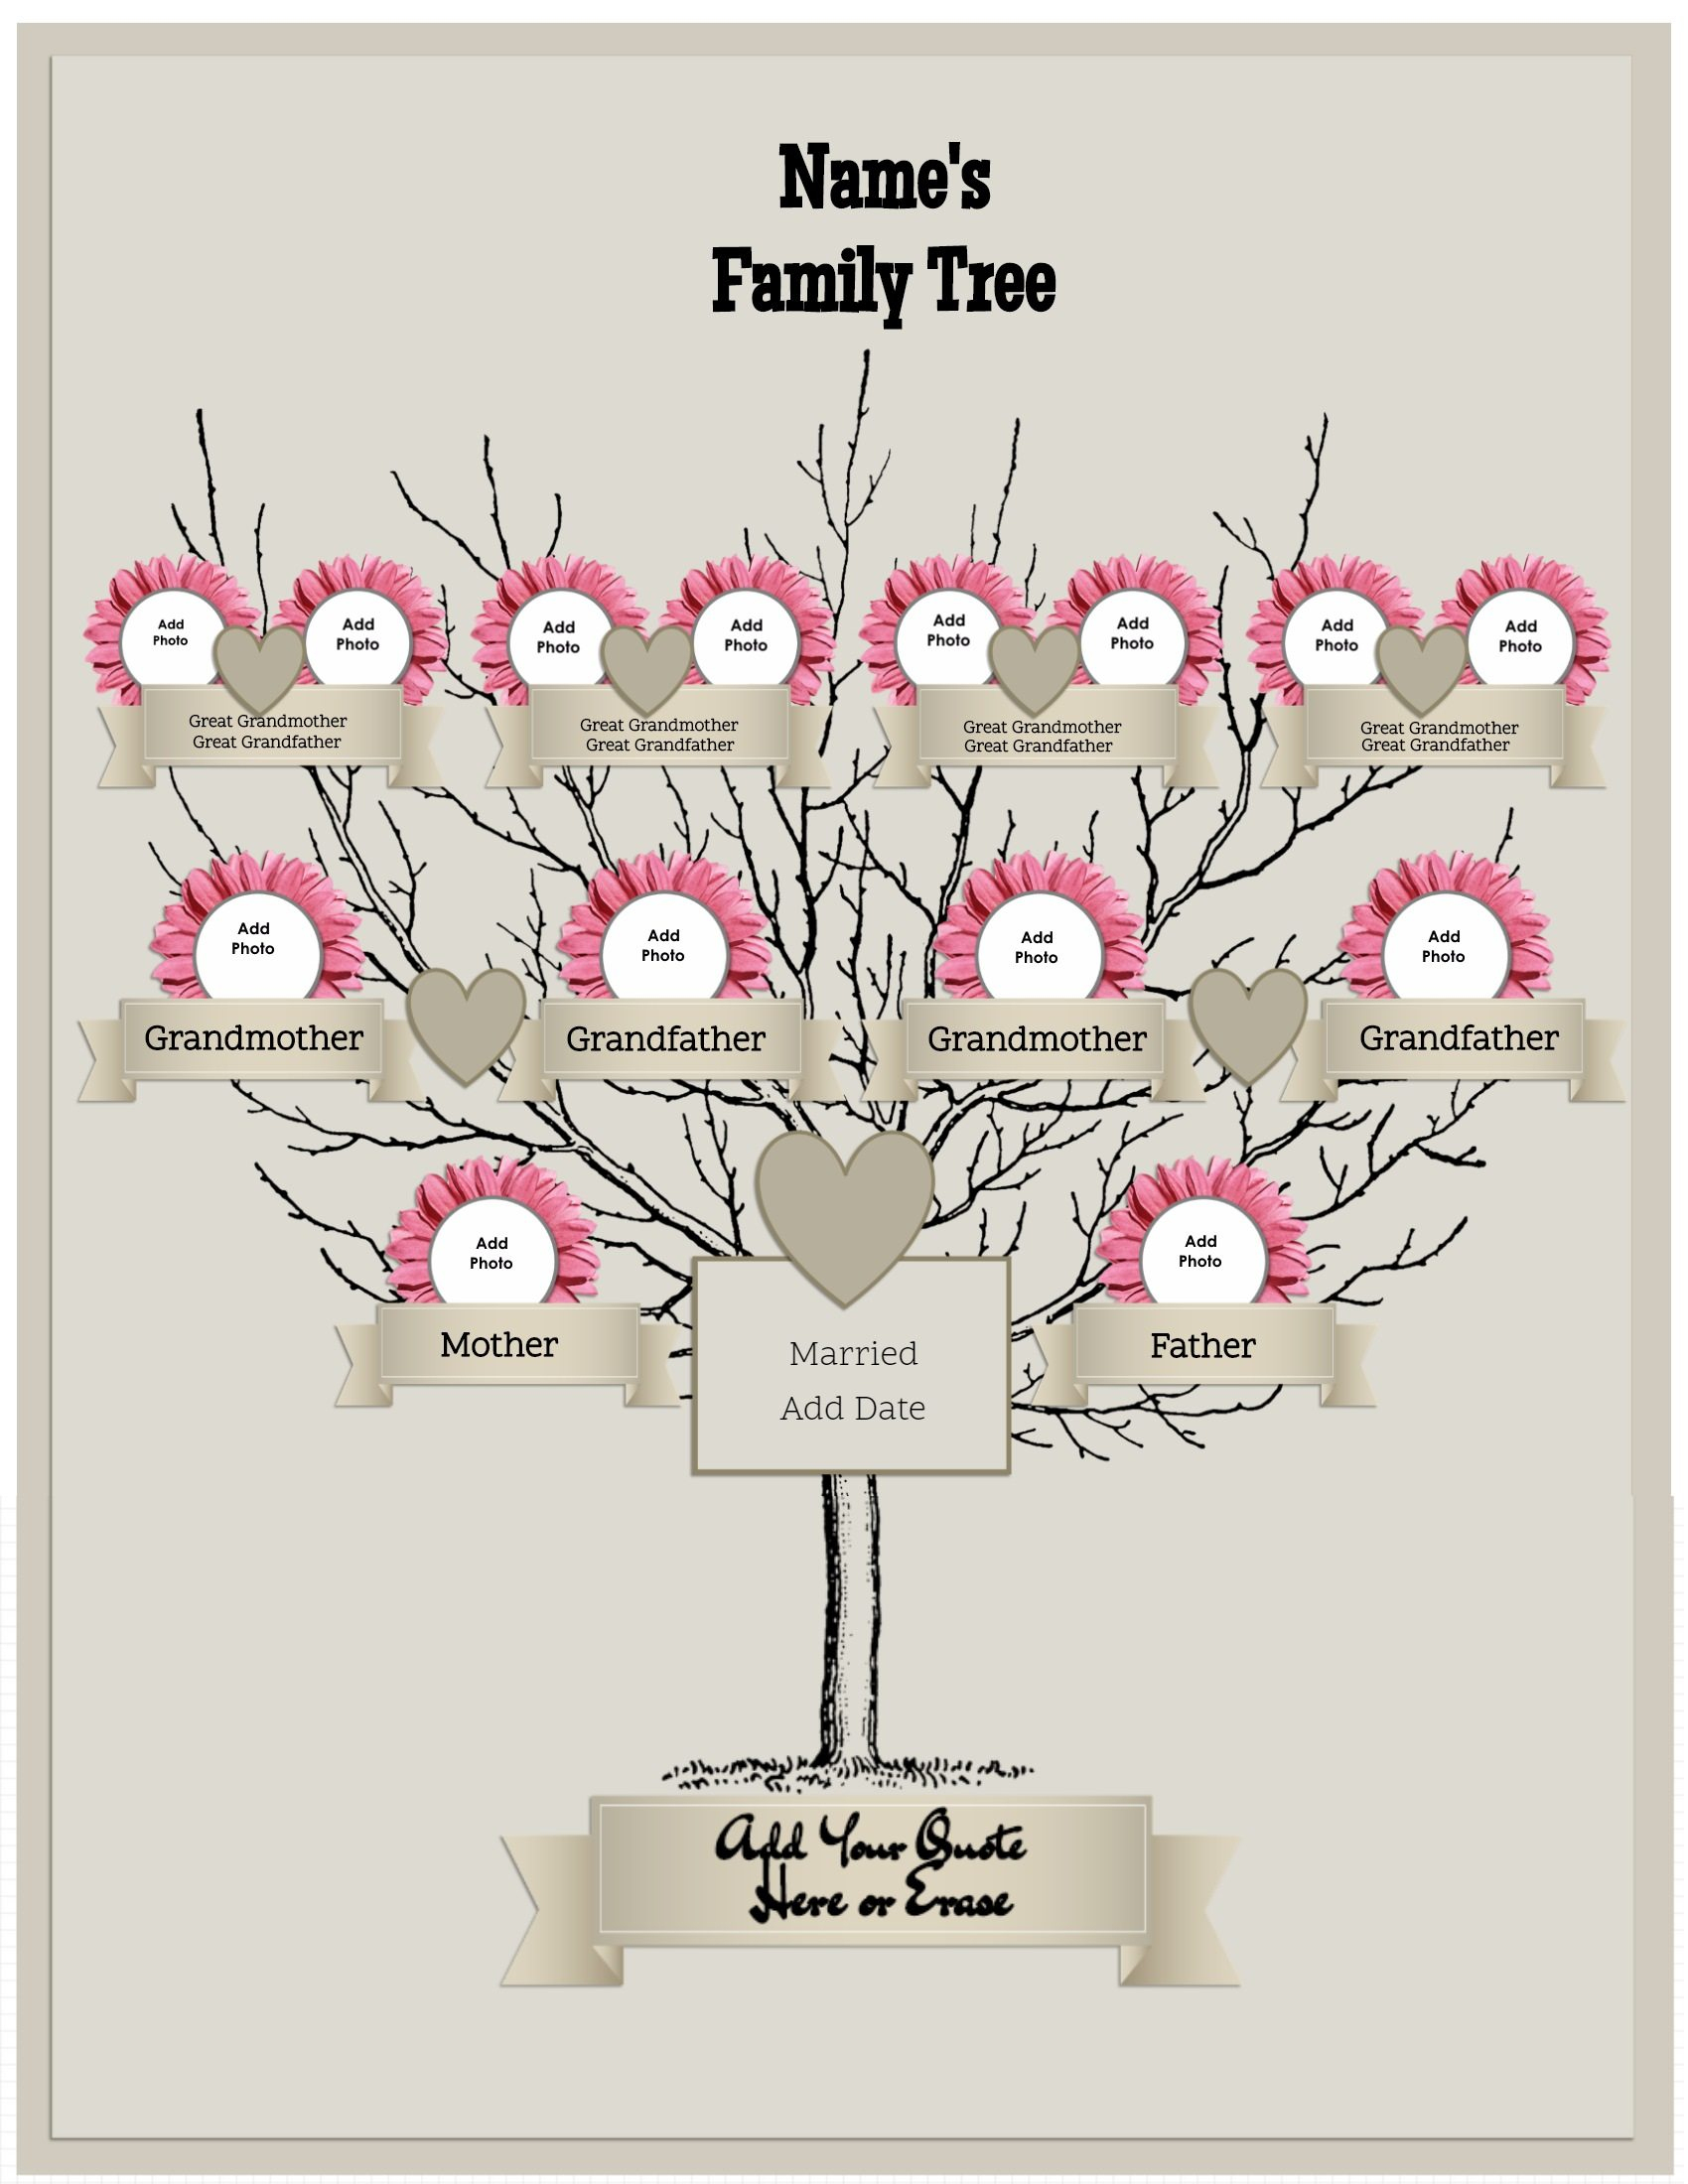 3 Generation Family Tree Generator | All Templates Are Free To Customize - Family Tree Maker Online Free Printable